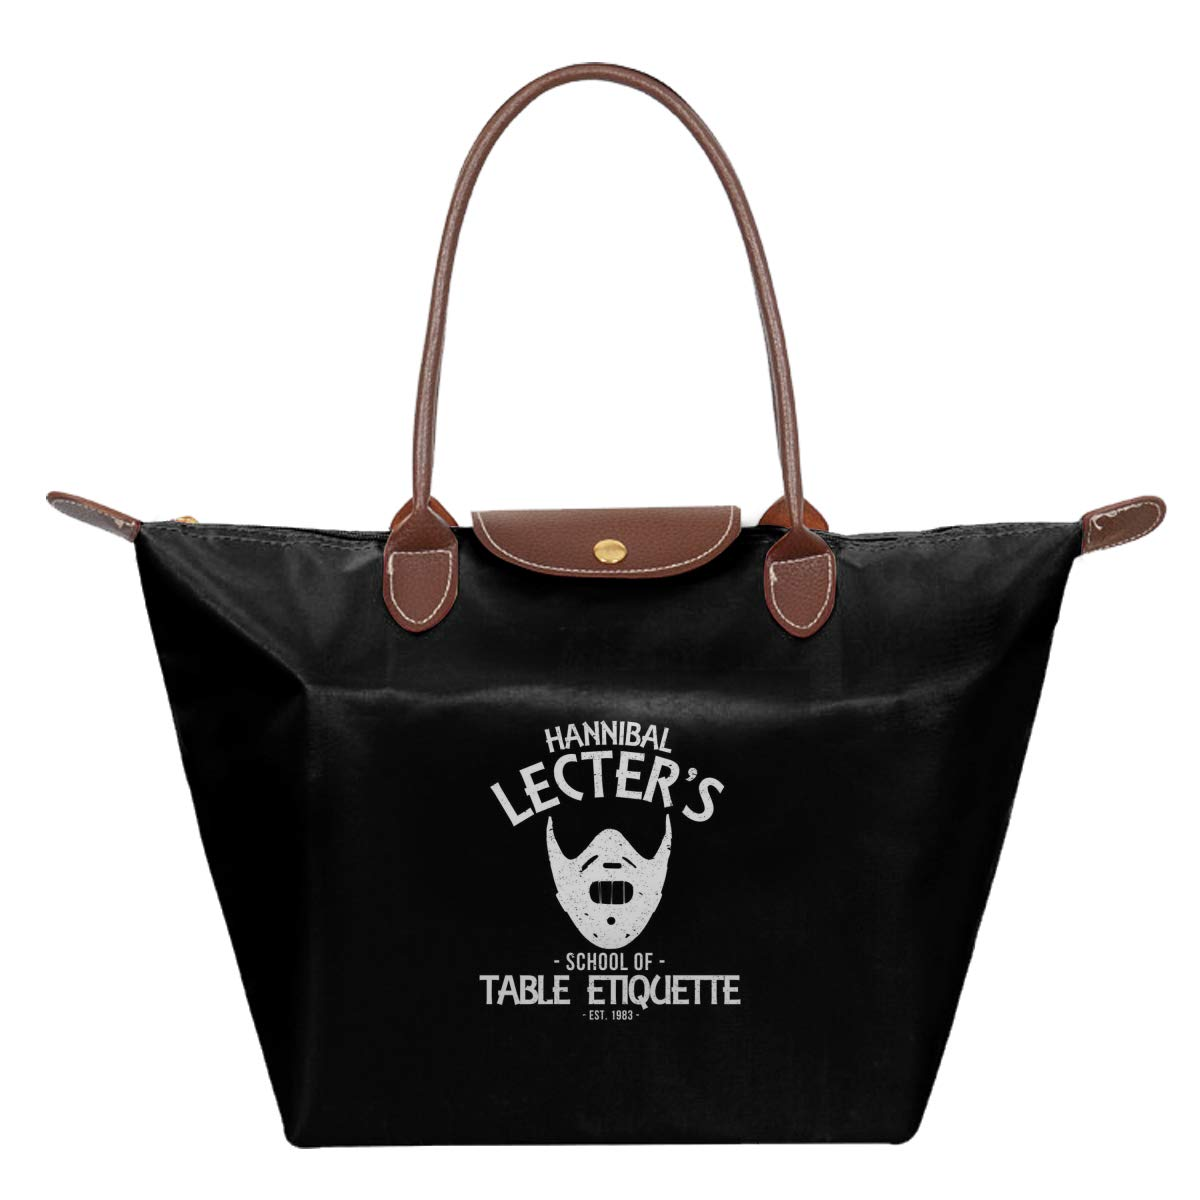 Hannibal Lecters School Of Table Etiquette Waterproof Leather Folded Messenger Nylon Bag Travel Tote Hopping Folding School Handbags